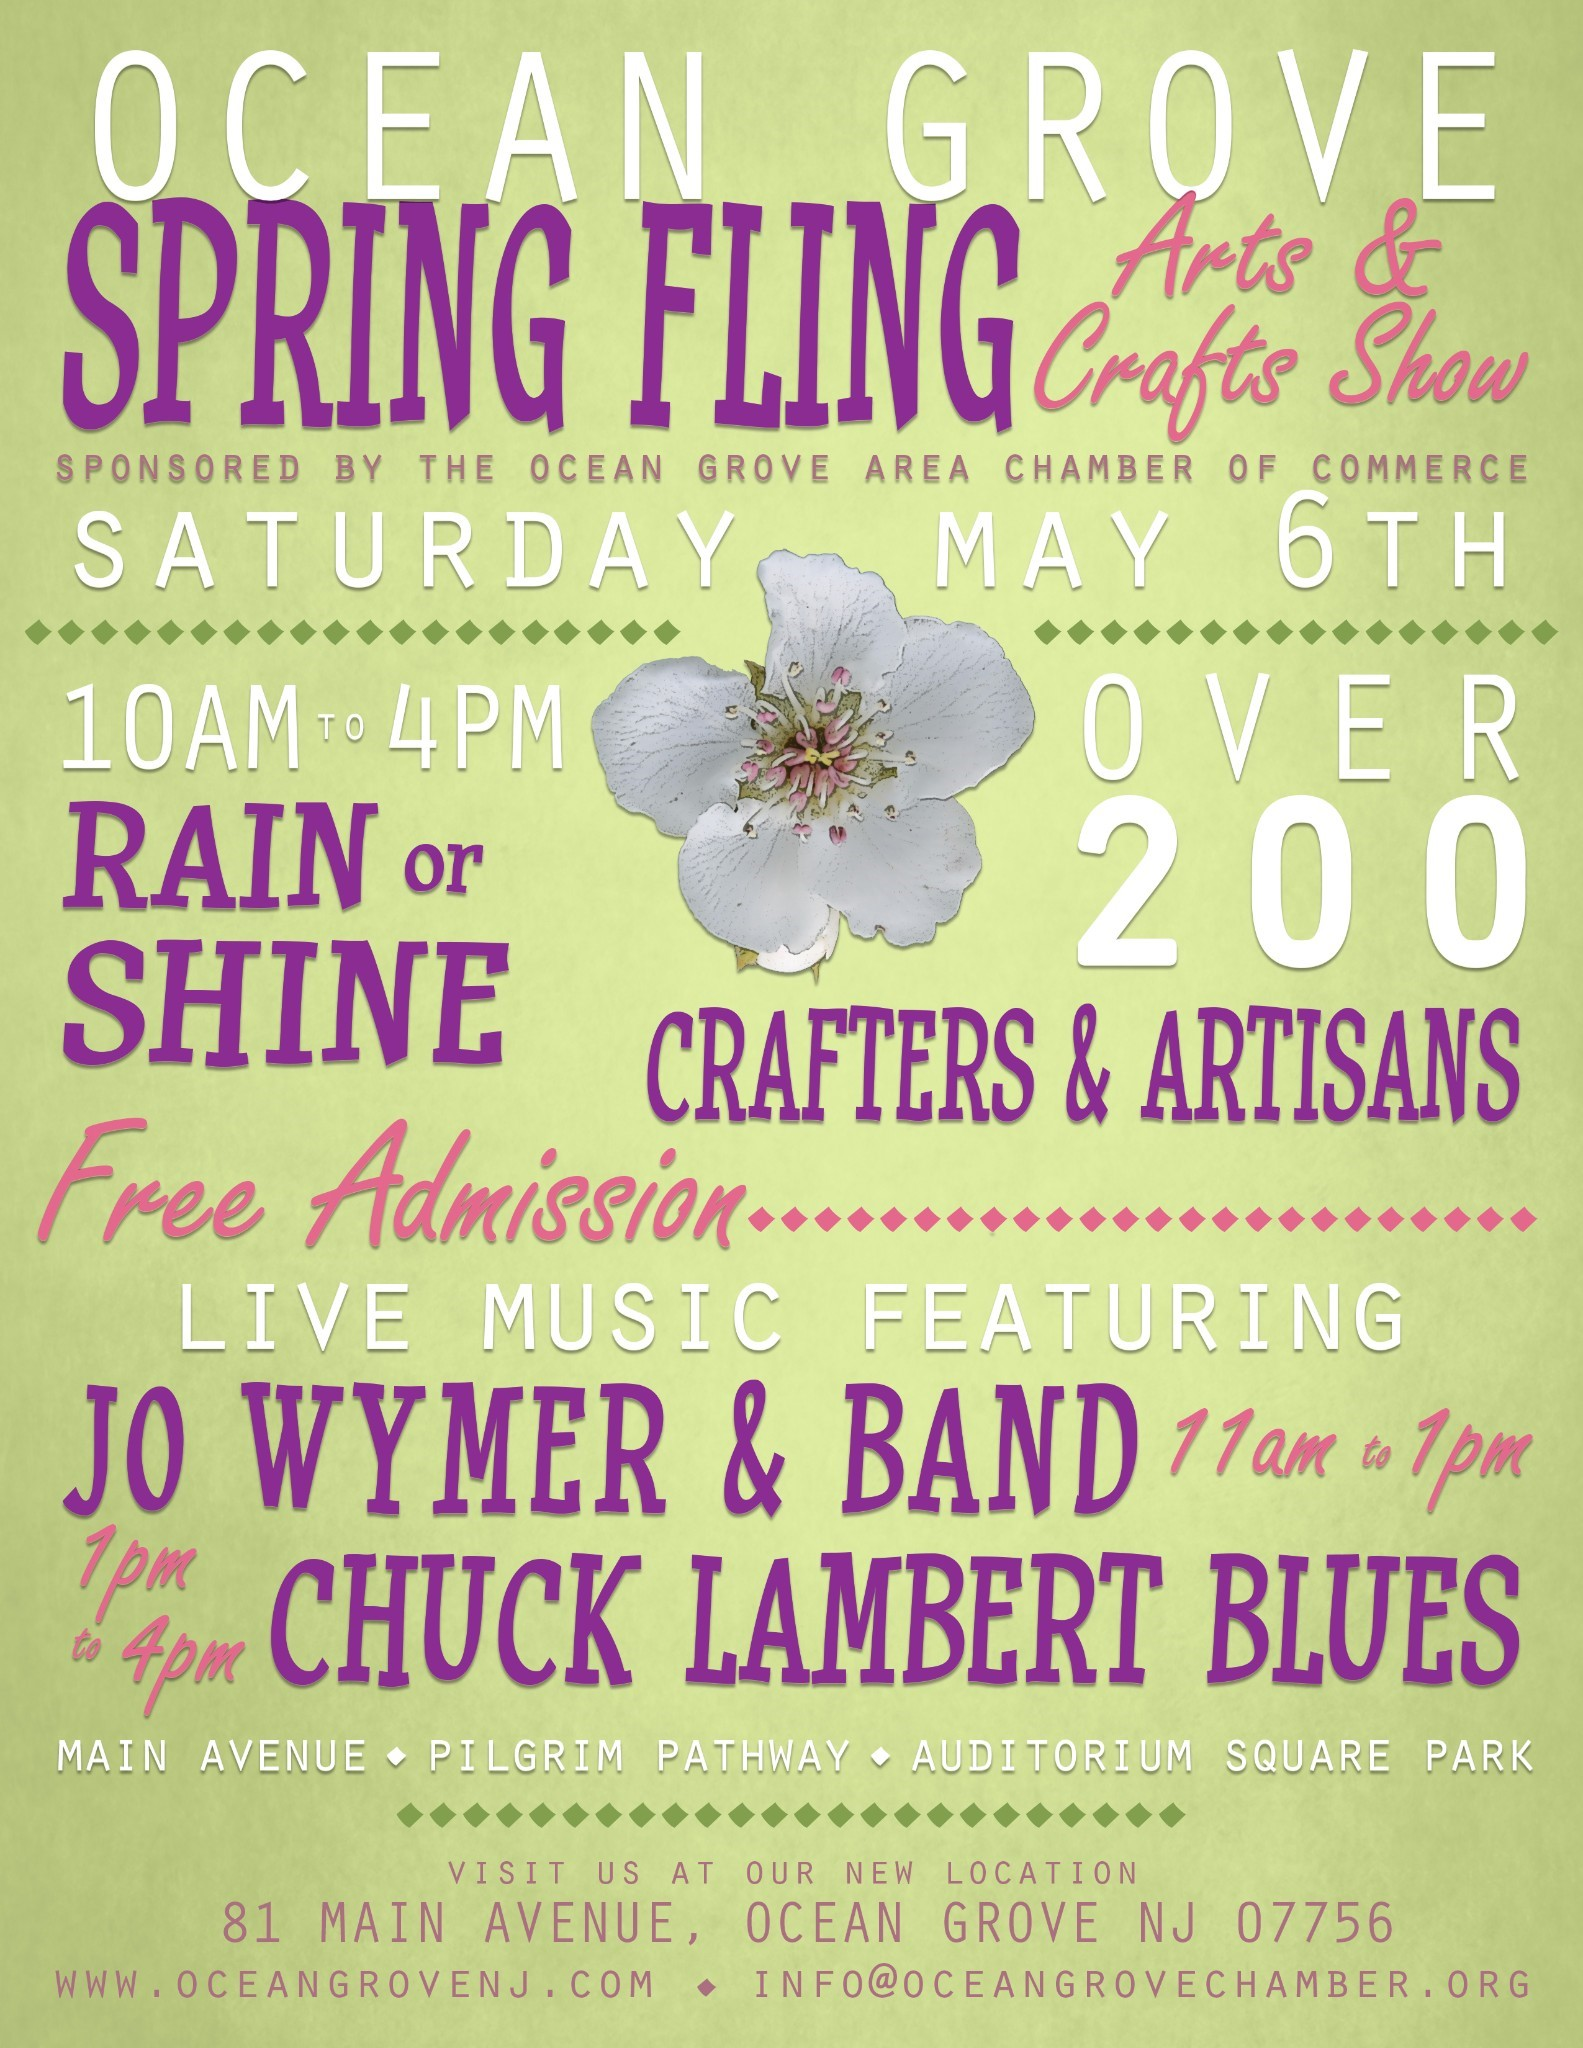 Ocean Grove Spring Fling Arts and Crafts Show